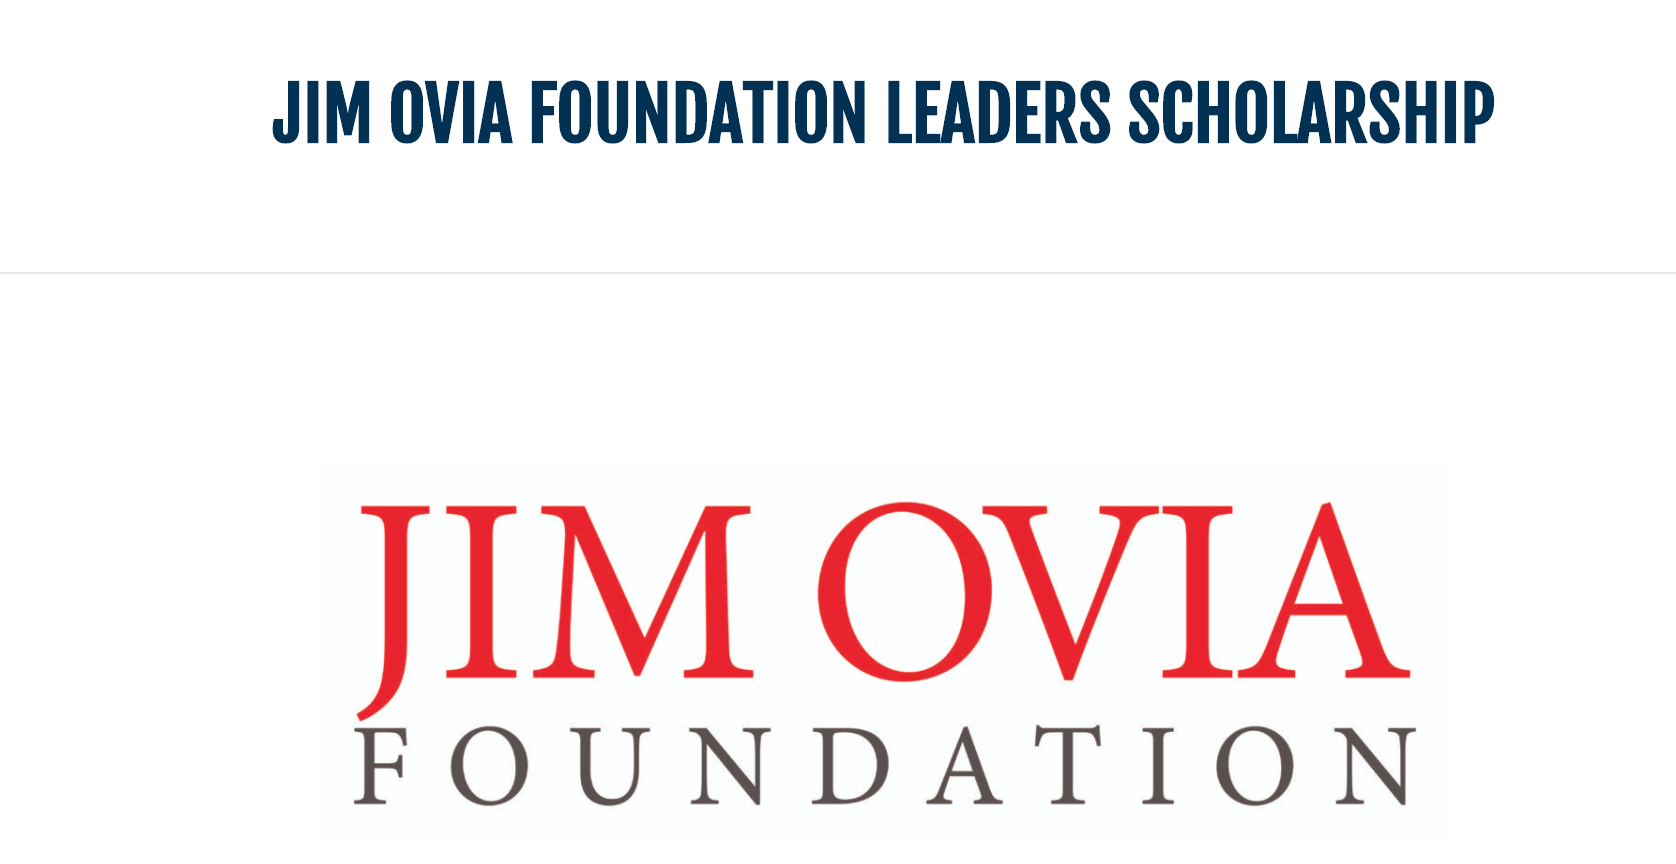 JIM OVIA FOUNDATION LEADERS SCHOLARSHIP